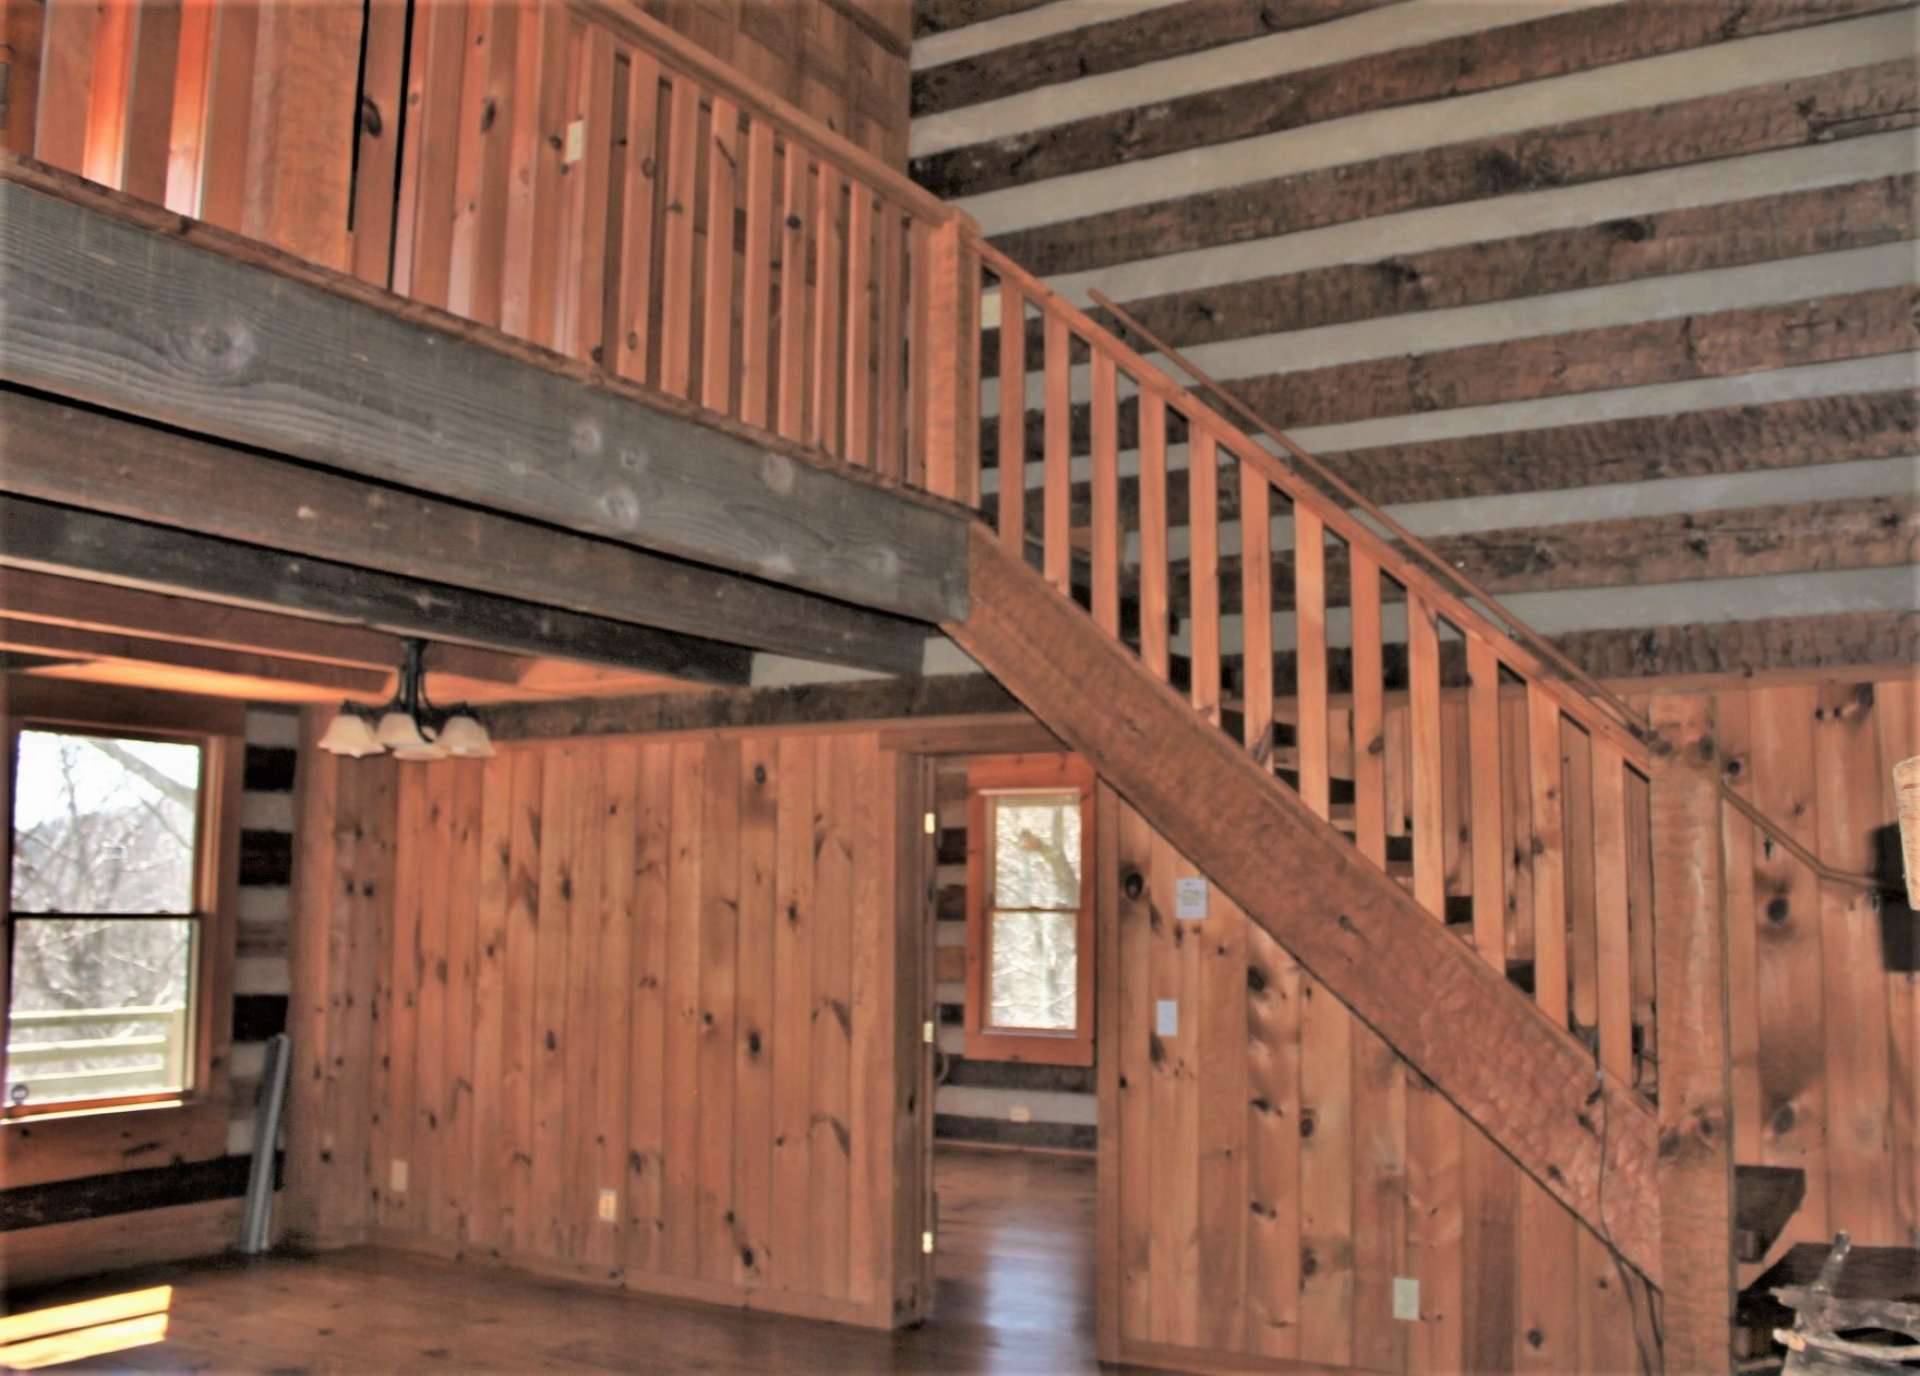 The hand-hewn staircase leads your guests to the bedroom loft area.